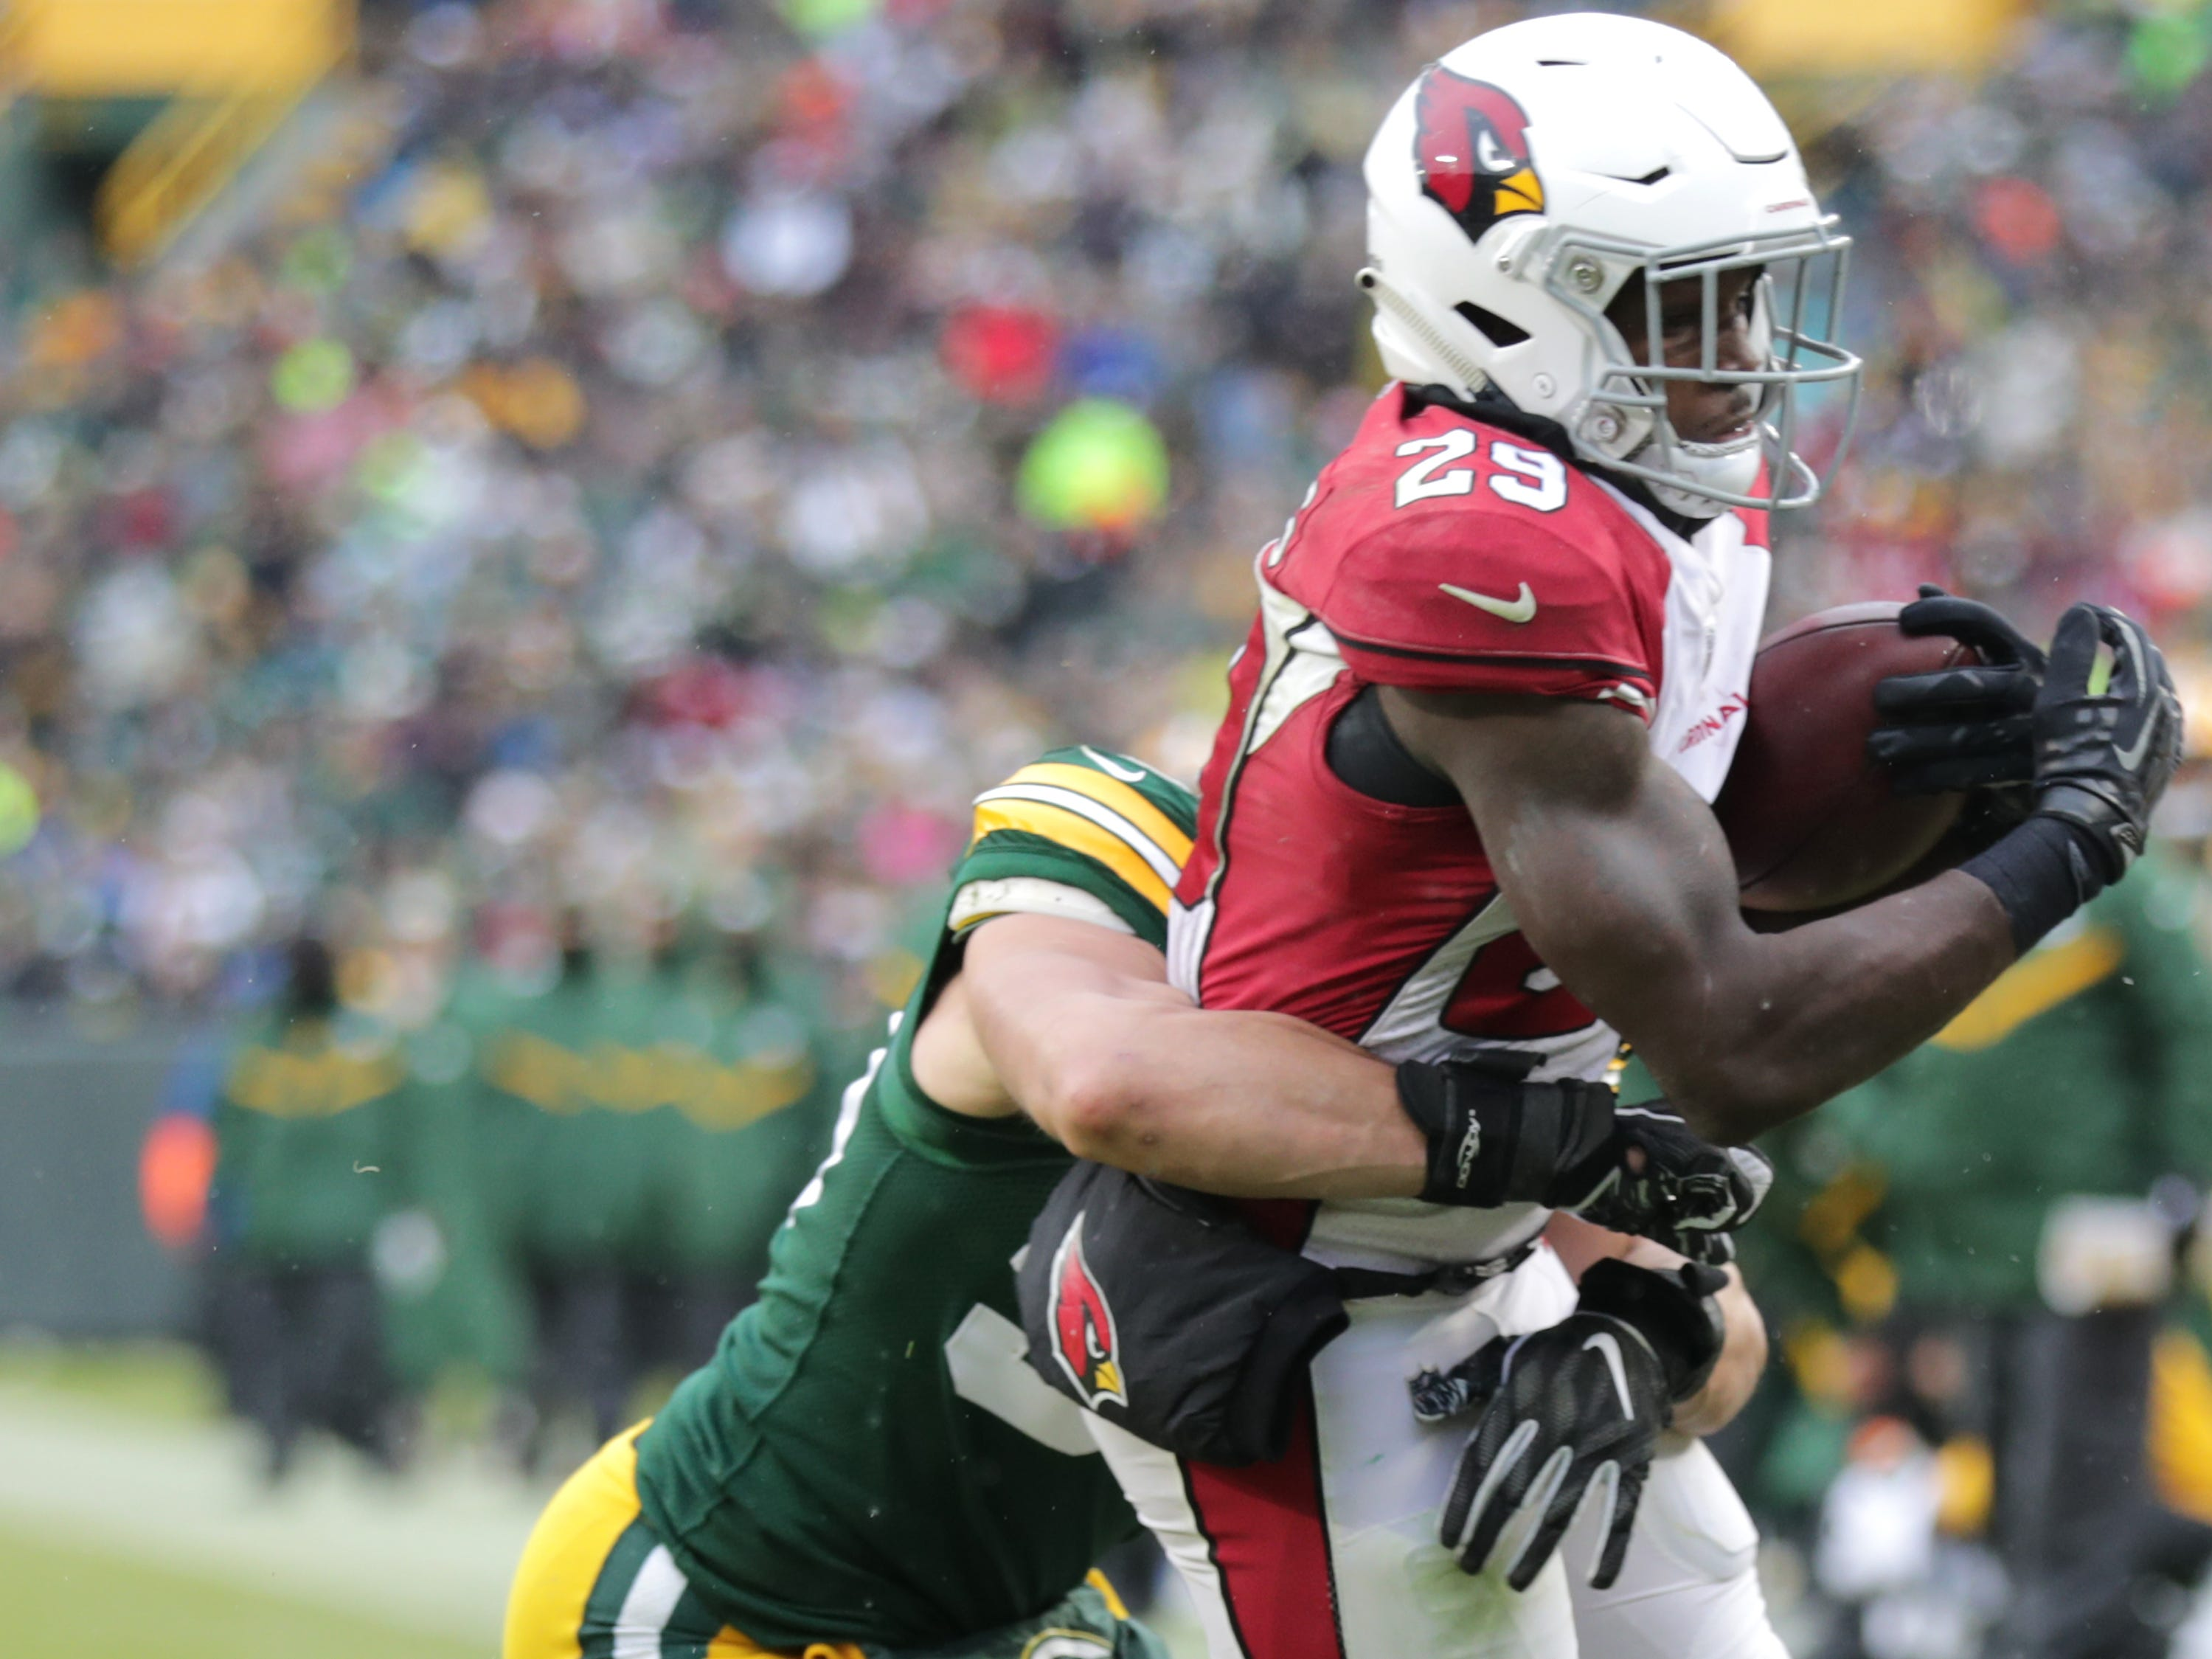 Arizona Cardinals running back Chase Edmonds crosses the goal line in the third quarter against the defense of Green Bay Packers inside linebacker Blake Martinez during their football game on Sunday, December 2, 2018, at Lambeau Field in Green Bay, Wis. Wm. Glasheen/USA TODAY NETWORK-Wisconsin.